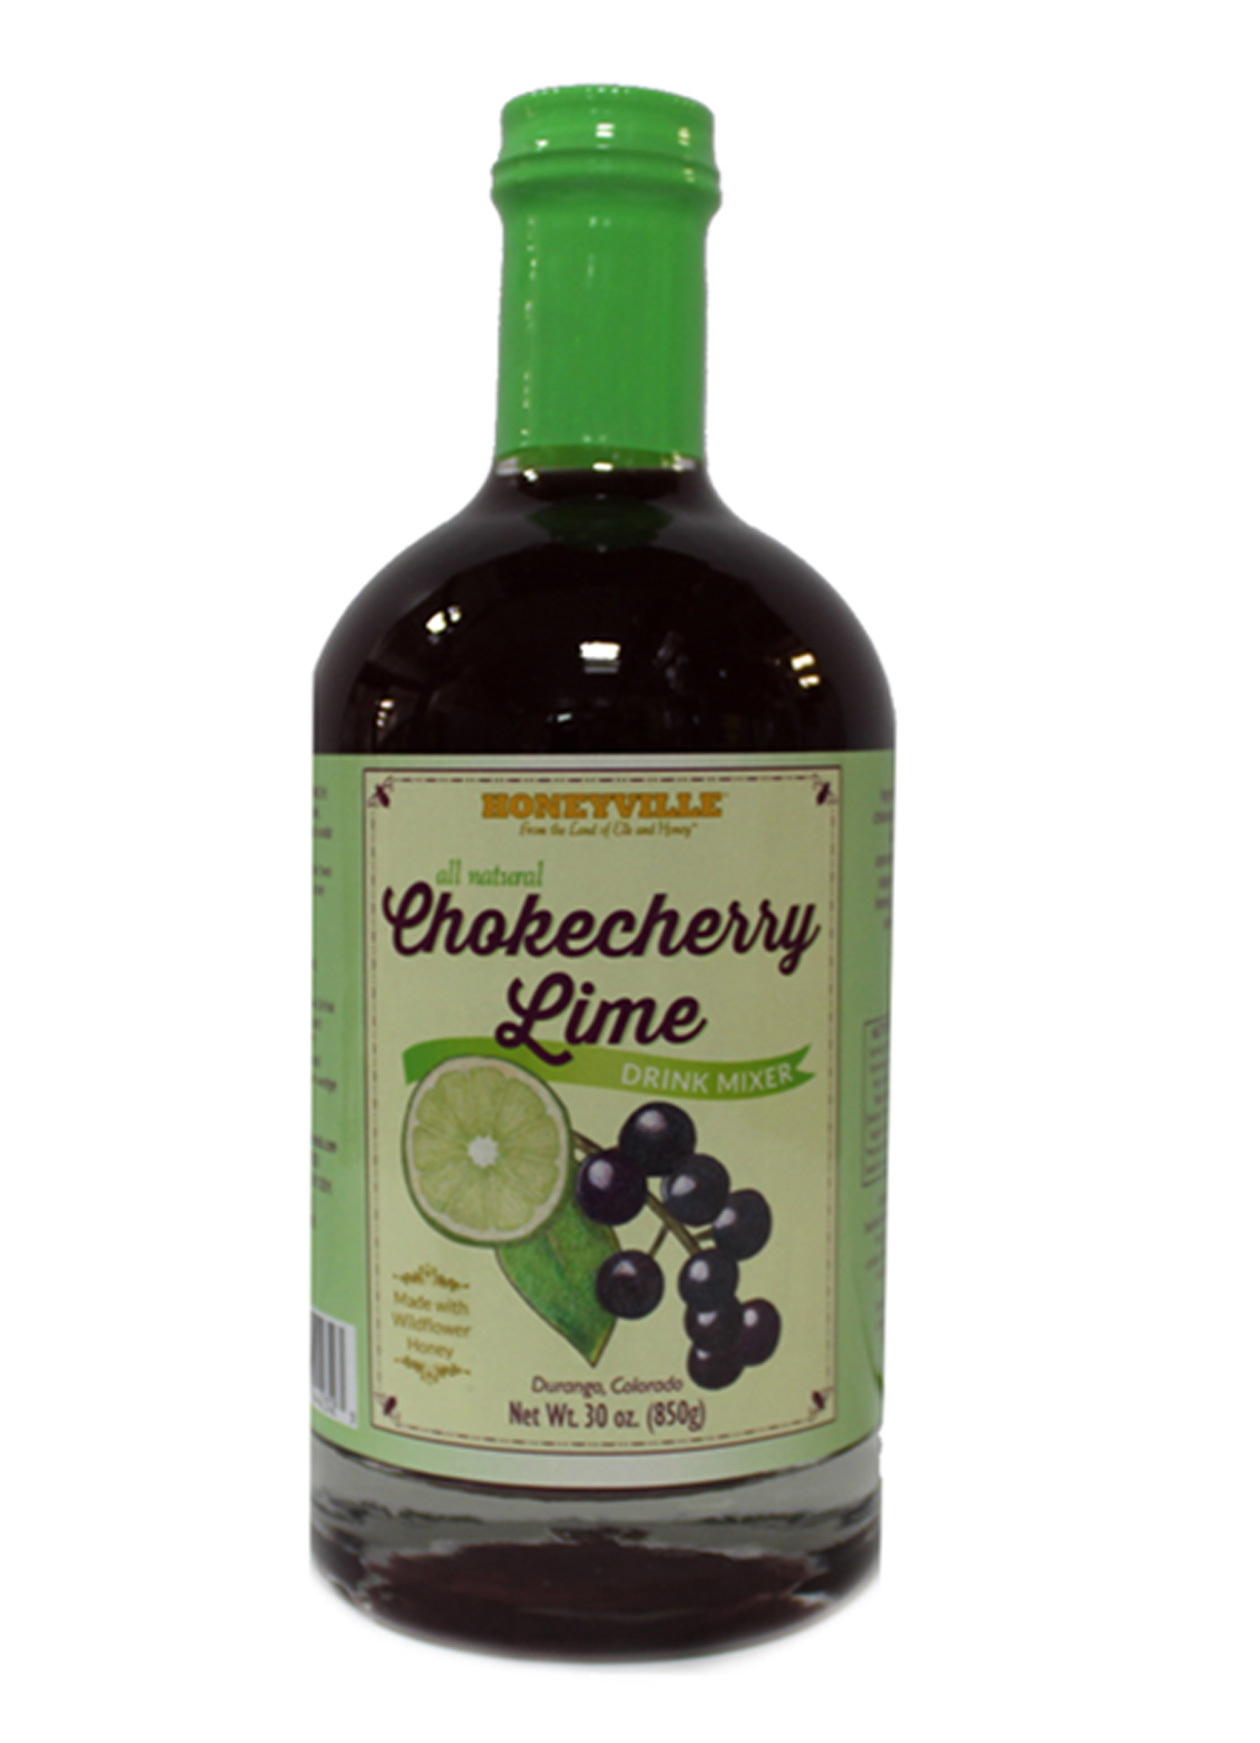 CHOKECHERRY LIME DRINK MIXER 30 oz